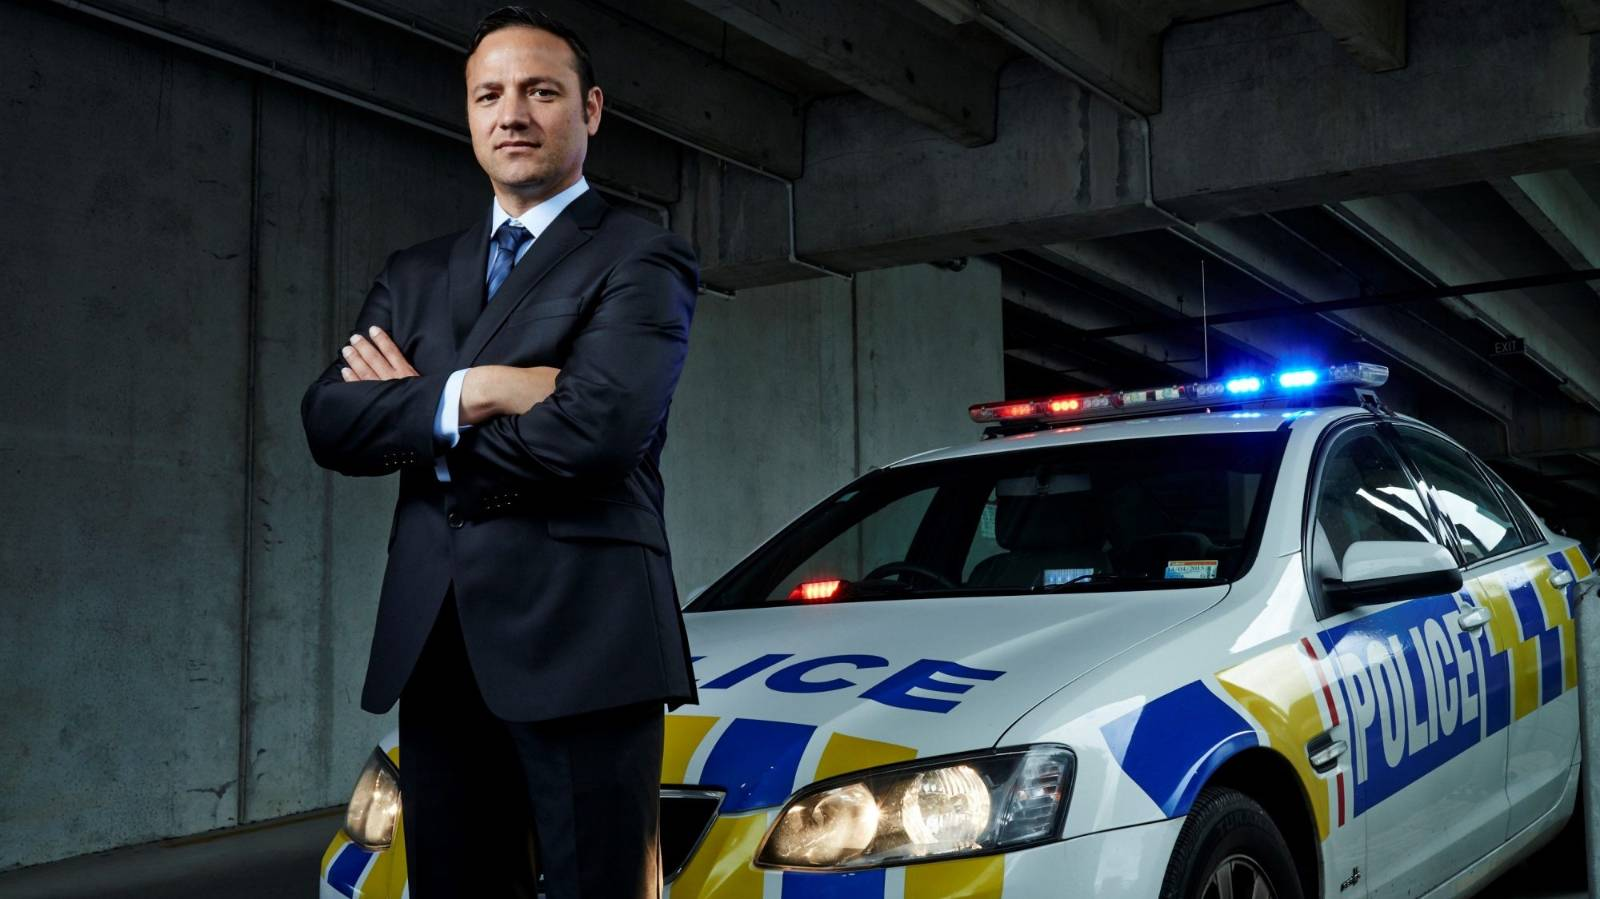 Police Ten 7 review says show isn't necessarily racist, but carries 'old school baggage'